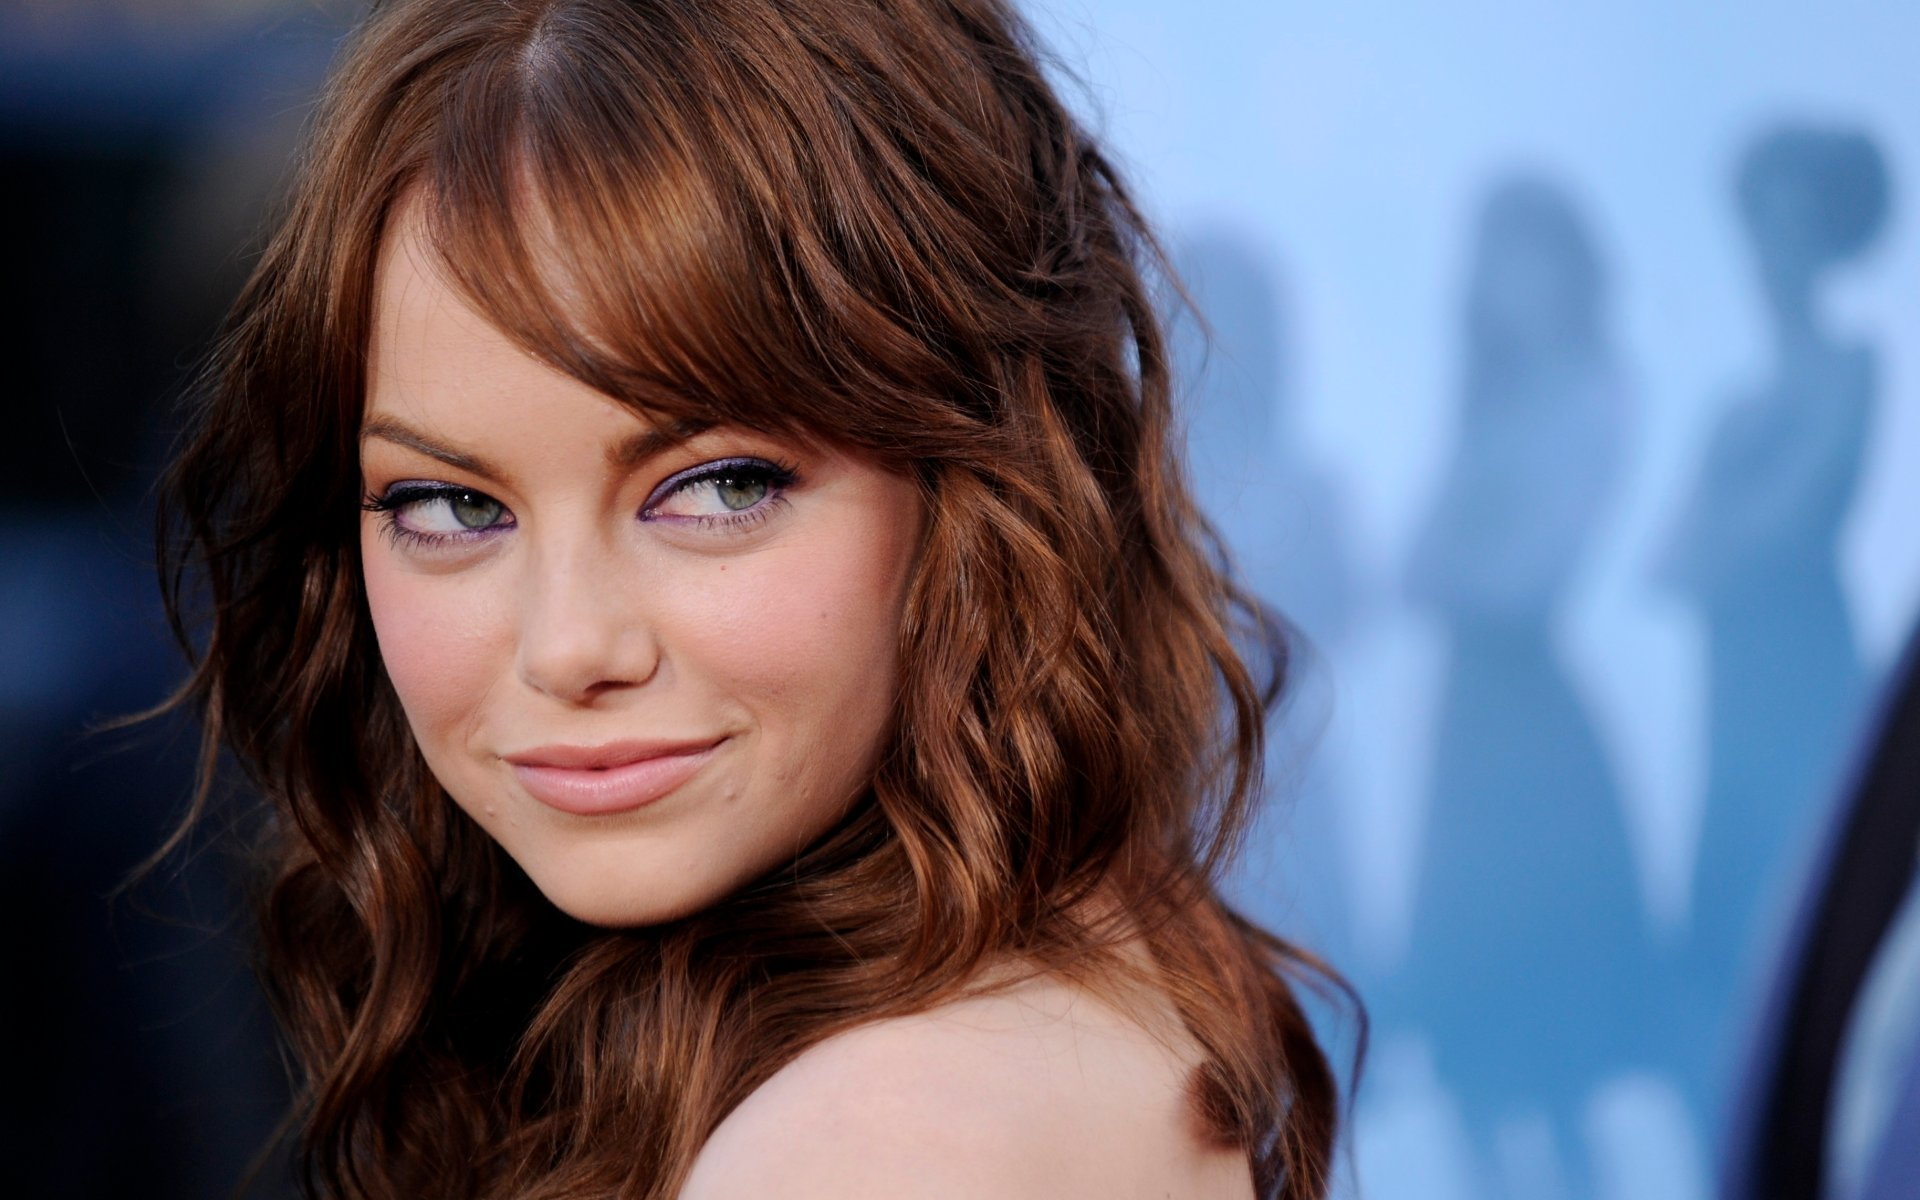 Emma Stone wallpaper screensaver hd desktop background hollywood celeb star